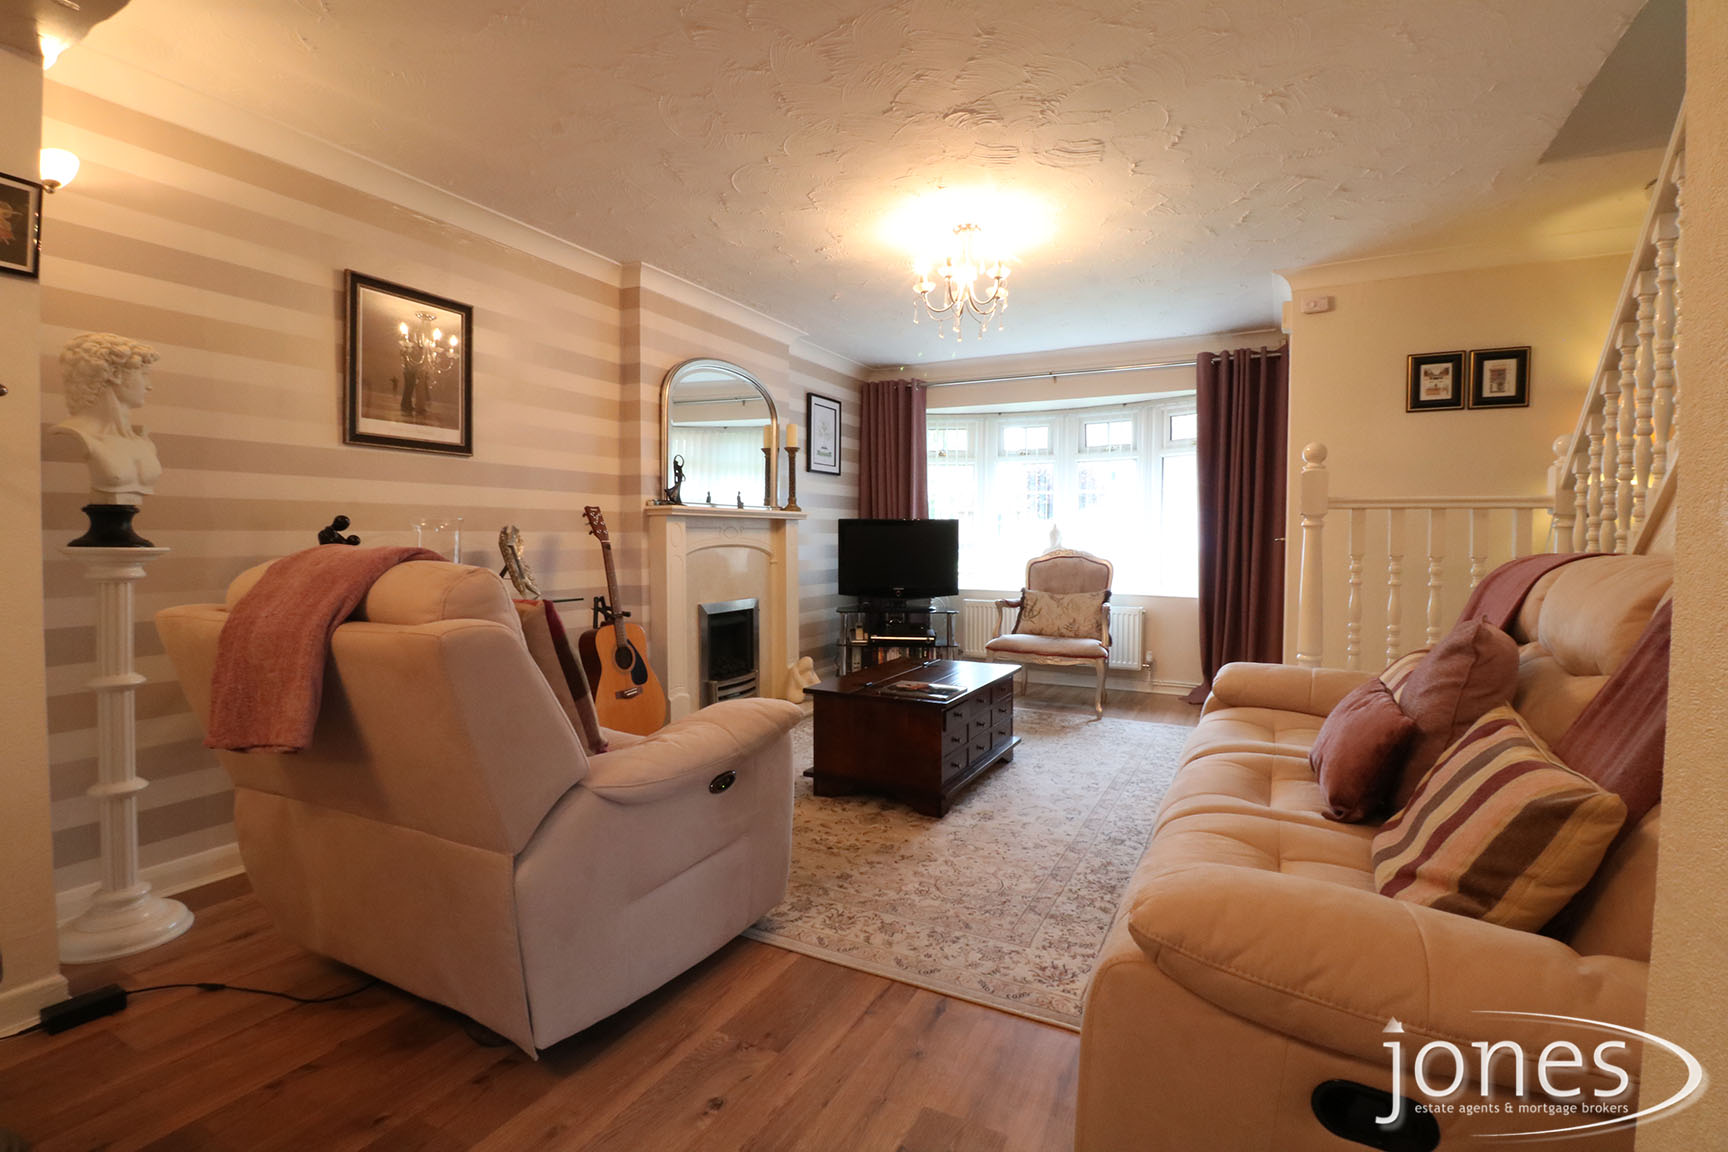 Home for Sale Let - Photo 02 Surbiton Road, Fairfield, Stockton on Tees, TS19 7SA